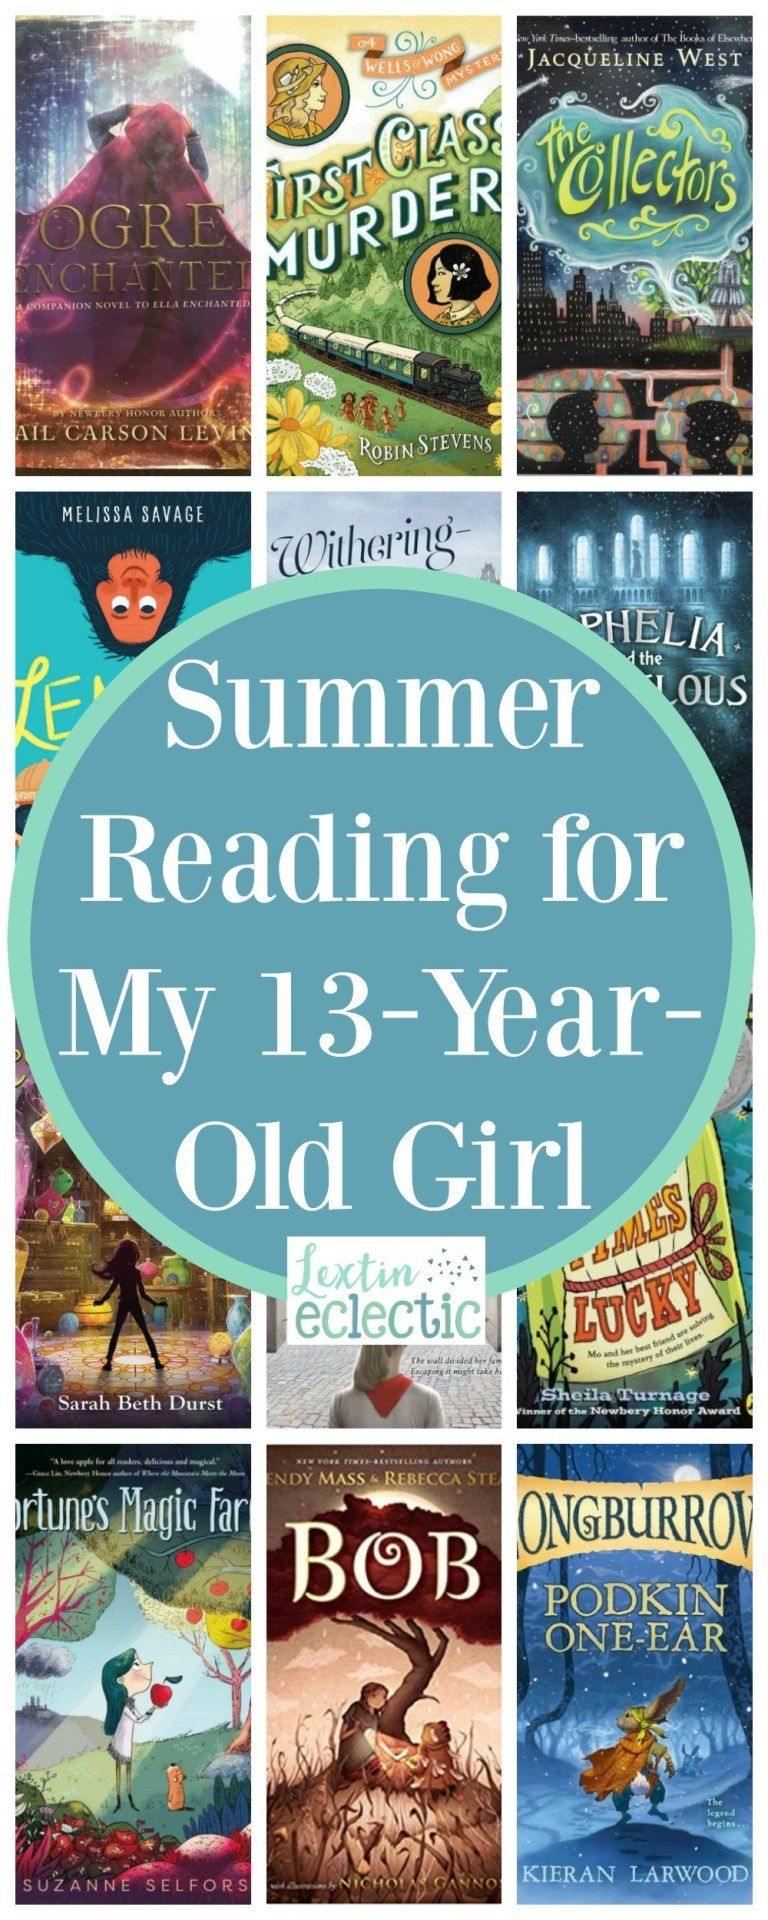 Summer Reading For My 13 Year Old Girl Lextin Eclectic Summer Reading Books For Teens Book Girl Can year olds read ya books